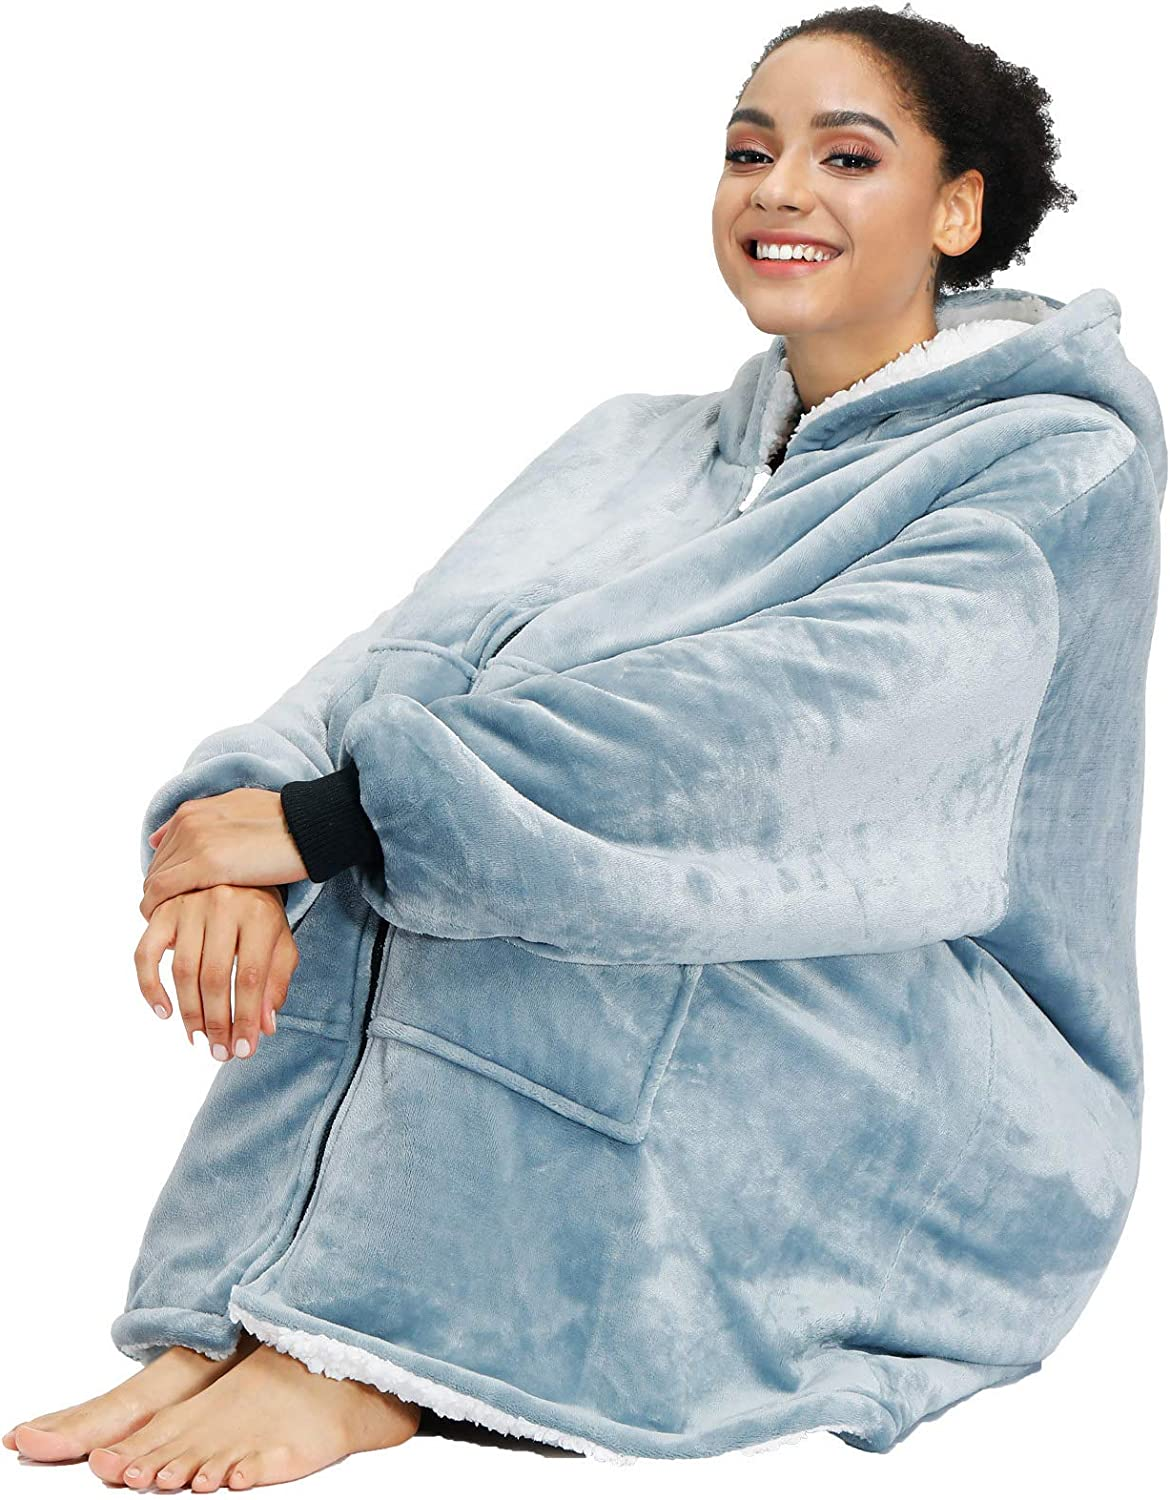 Hoodie Blanket Oversized Ultra Plush Comfy Sherpa Revisible Warm robe Winter New